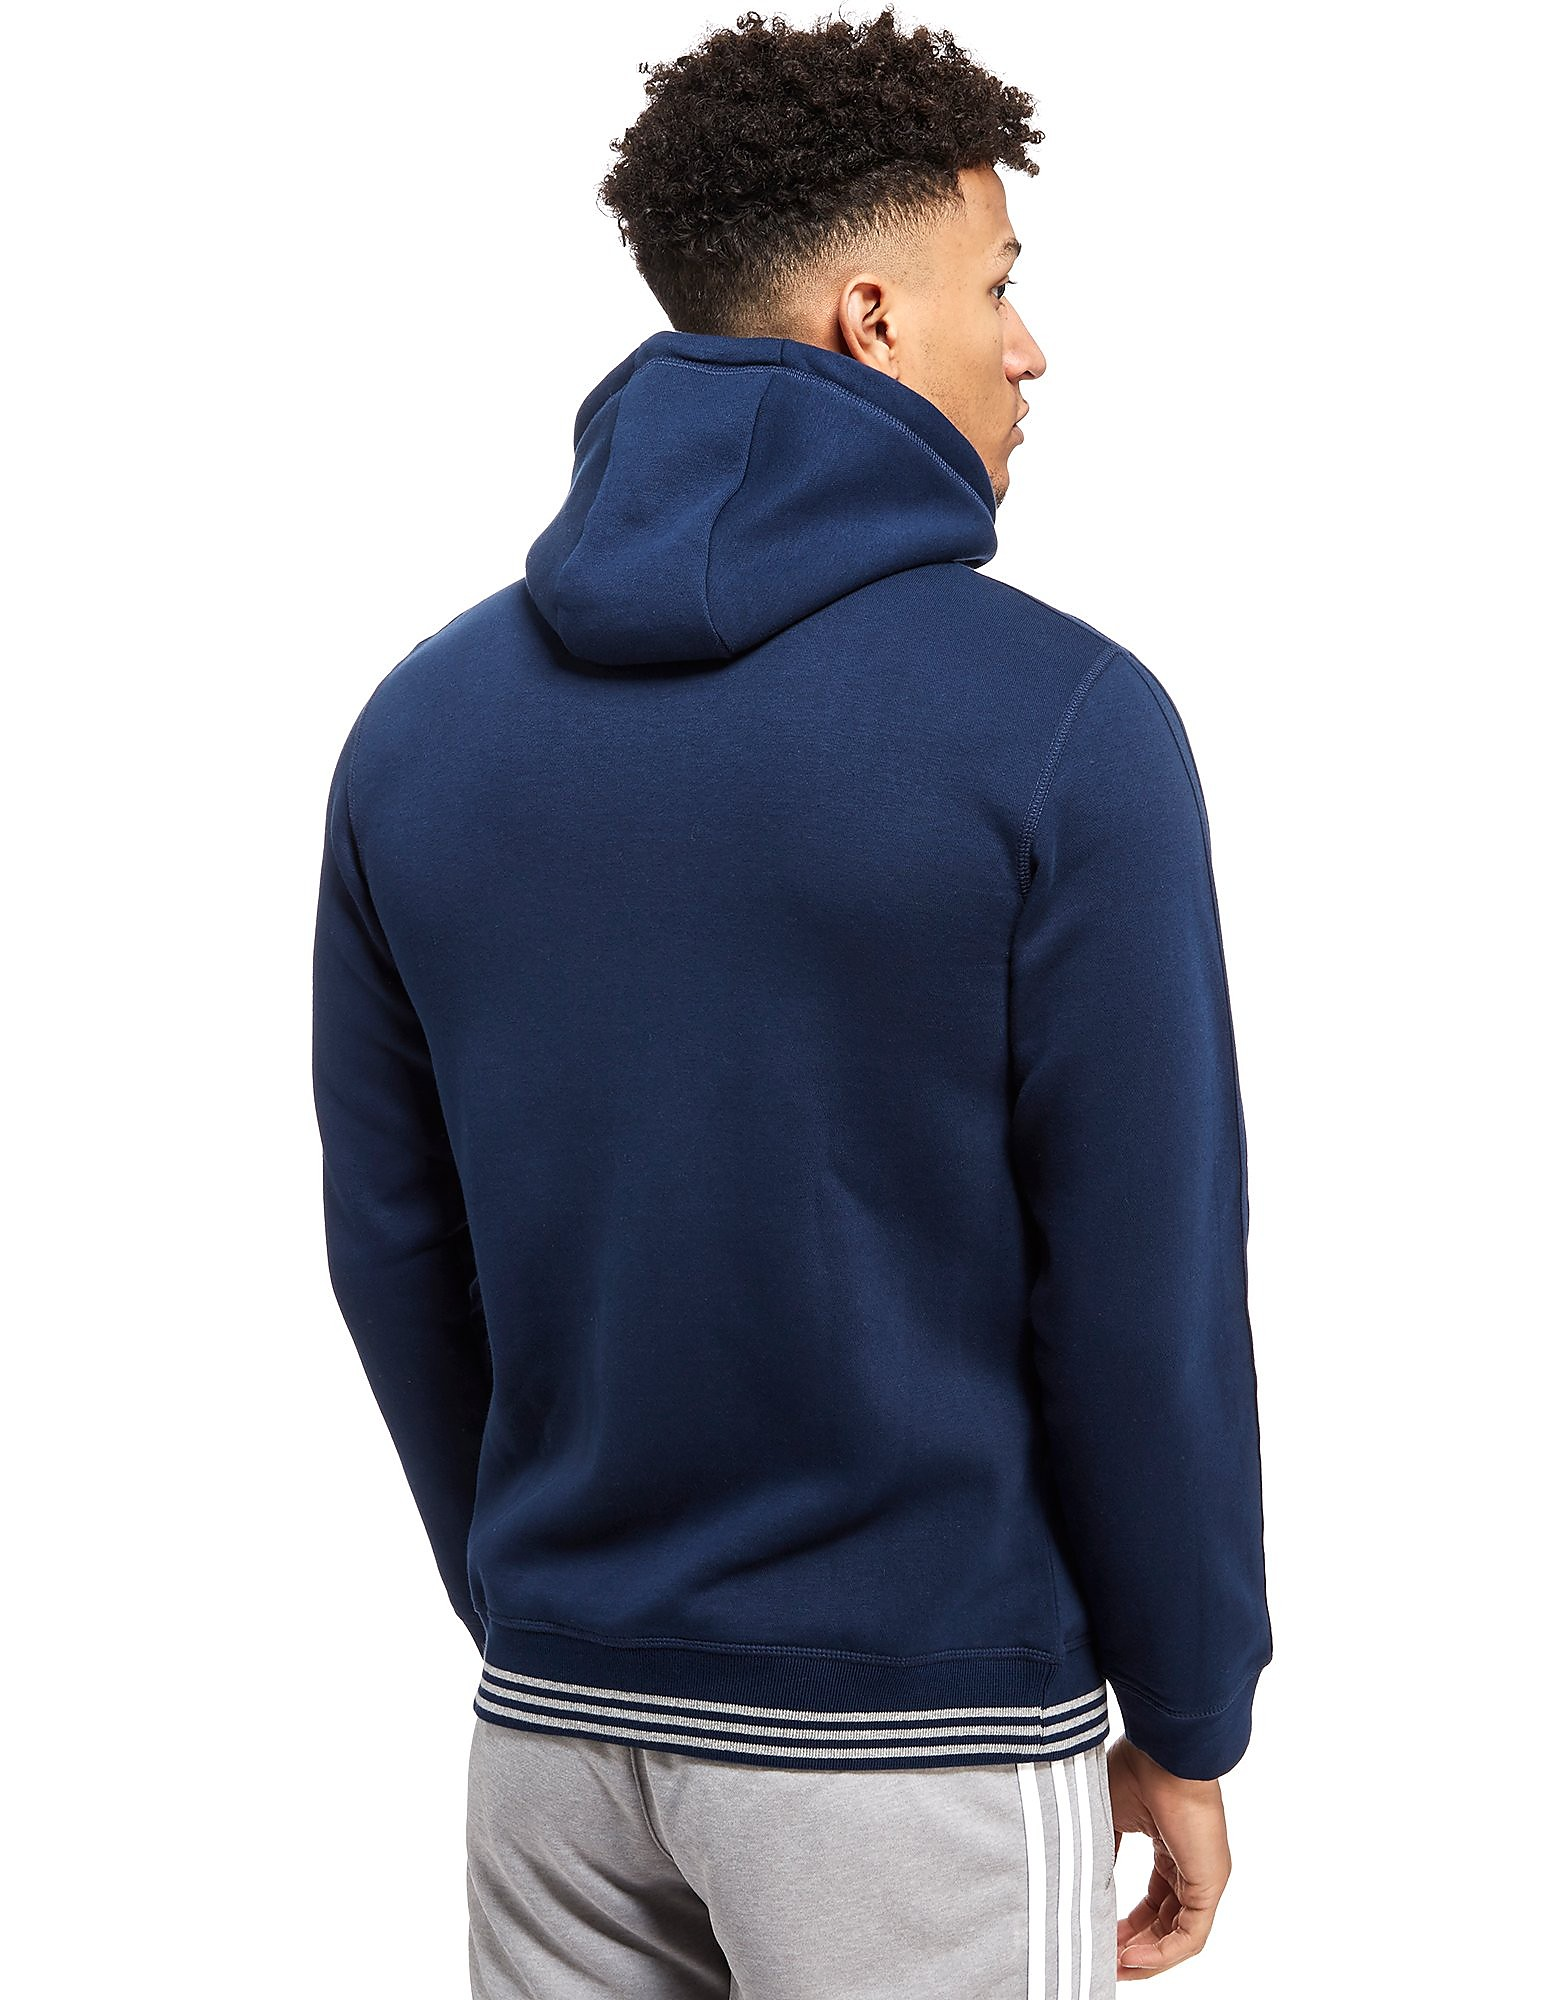 adidas Originals Trefoil Full Zip Hoody